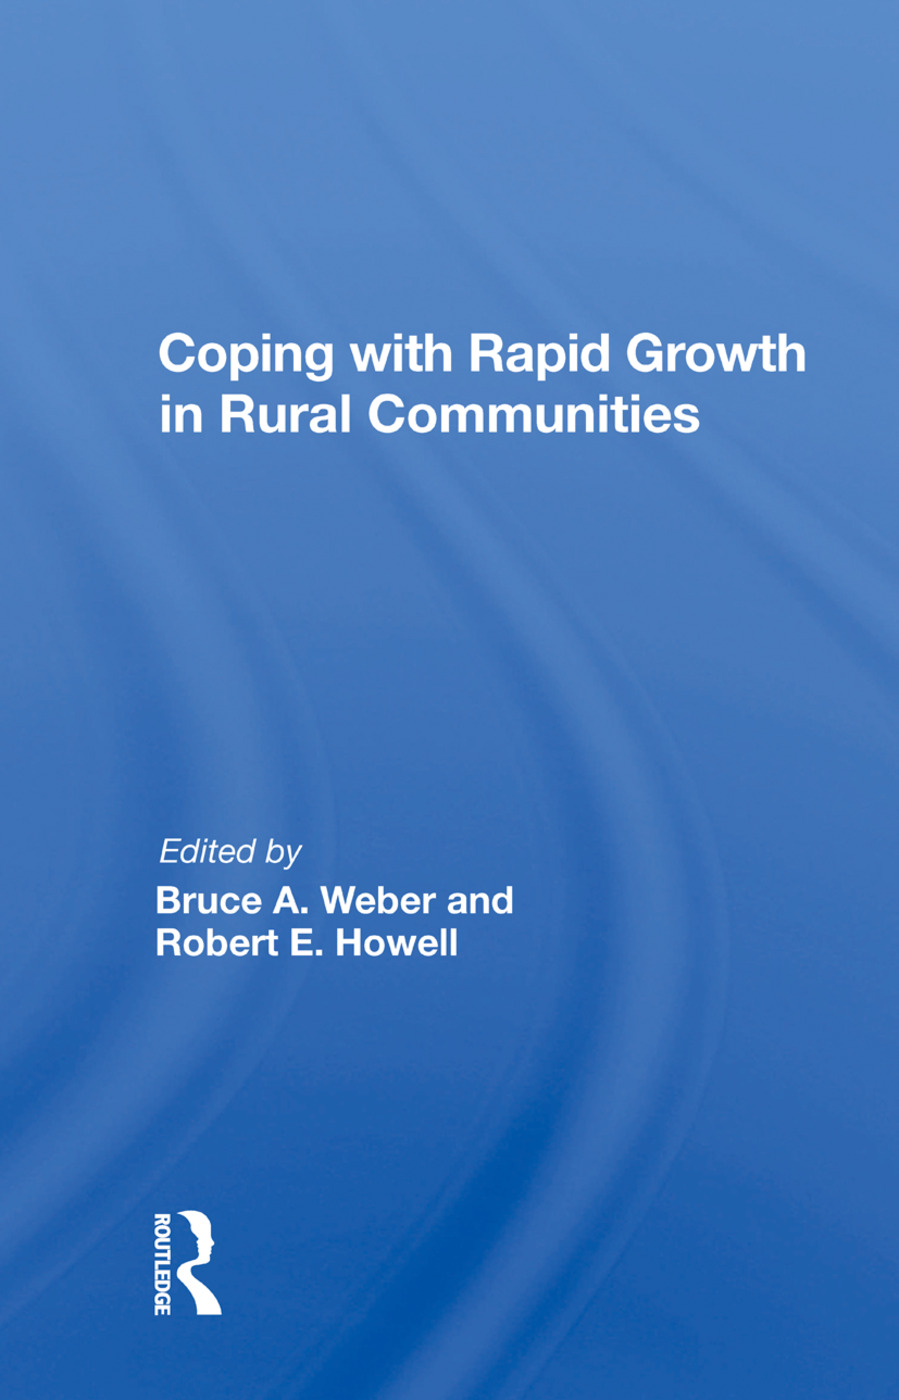 The Impacts of Rapid Growth on Local Organizations and Community Services